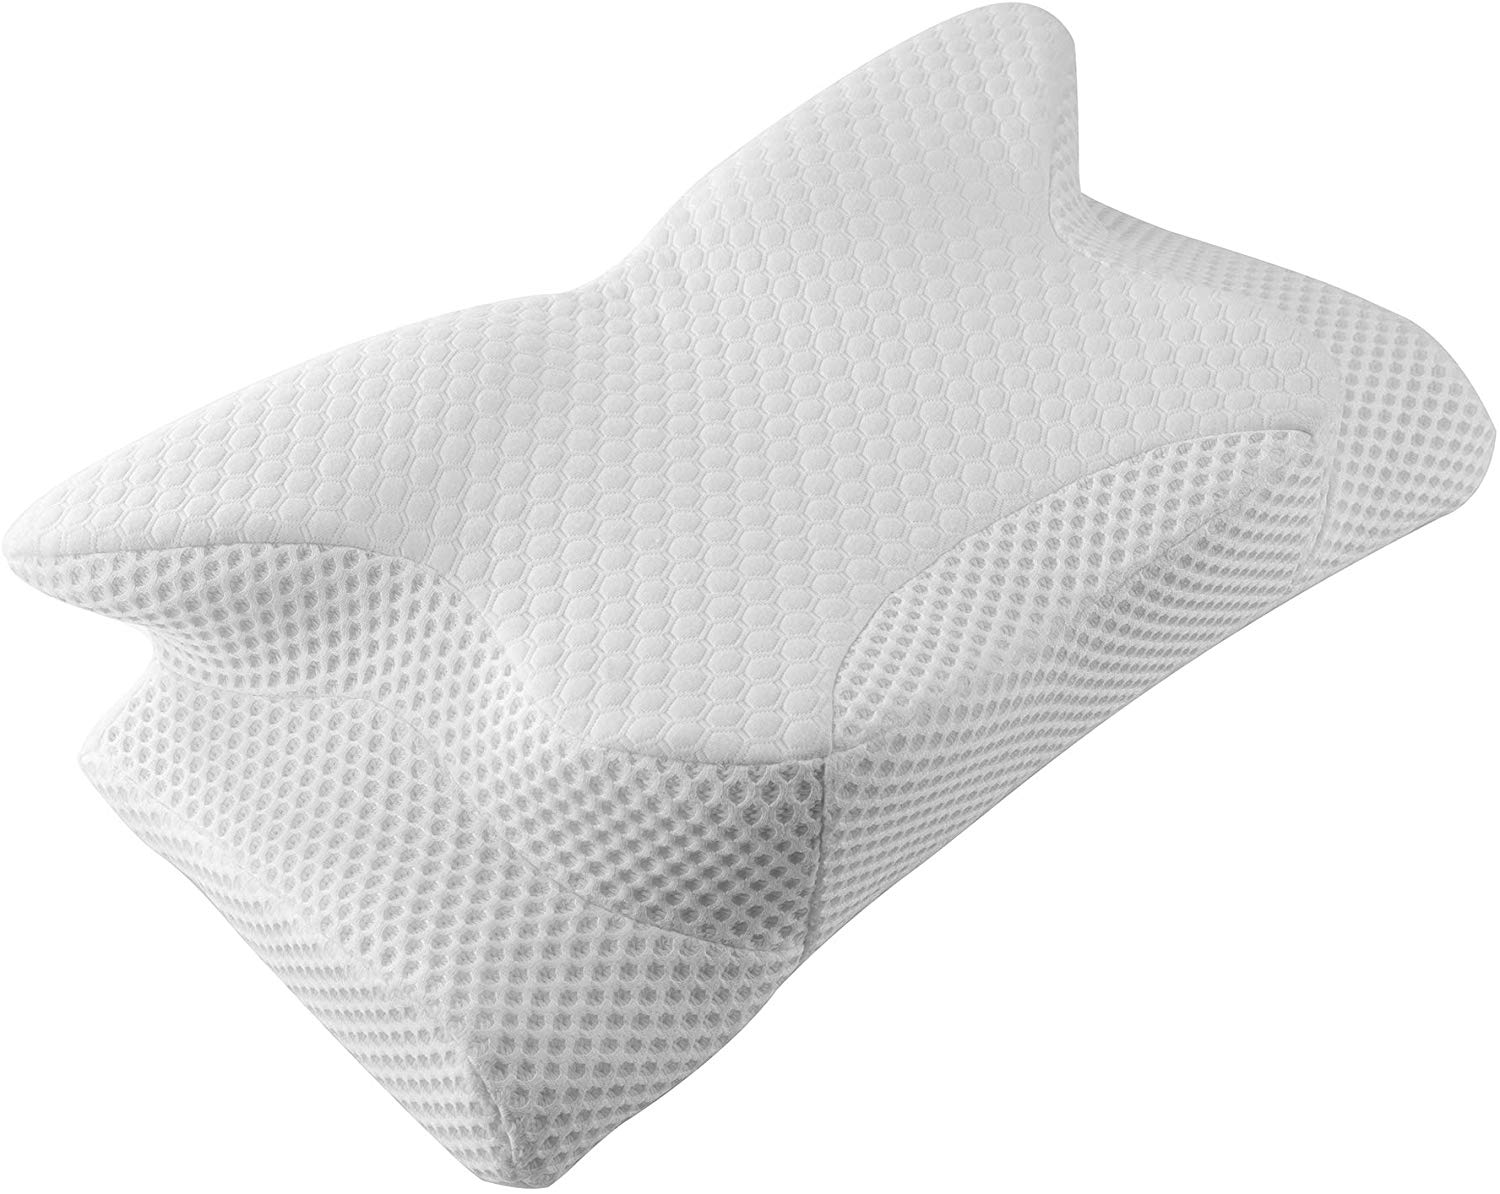 Orthopedic Pillow   Best Orthopedic Pillows for Neck Pain 2020